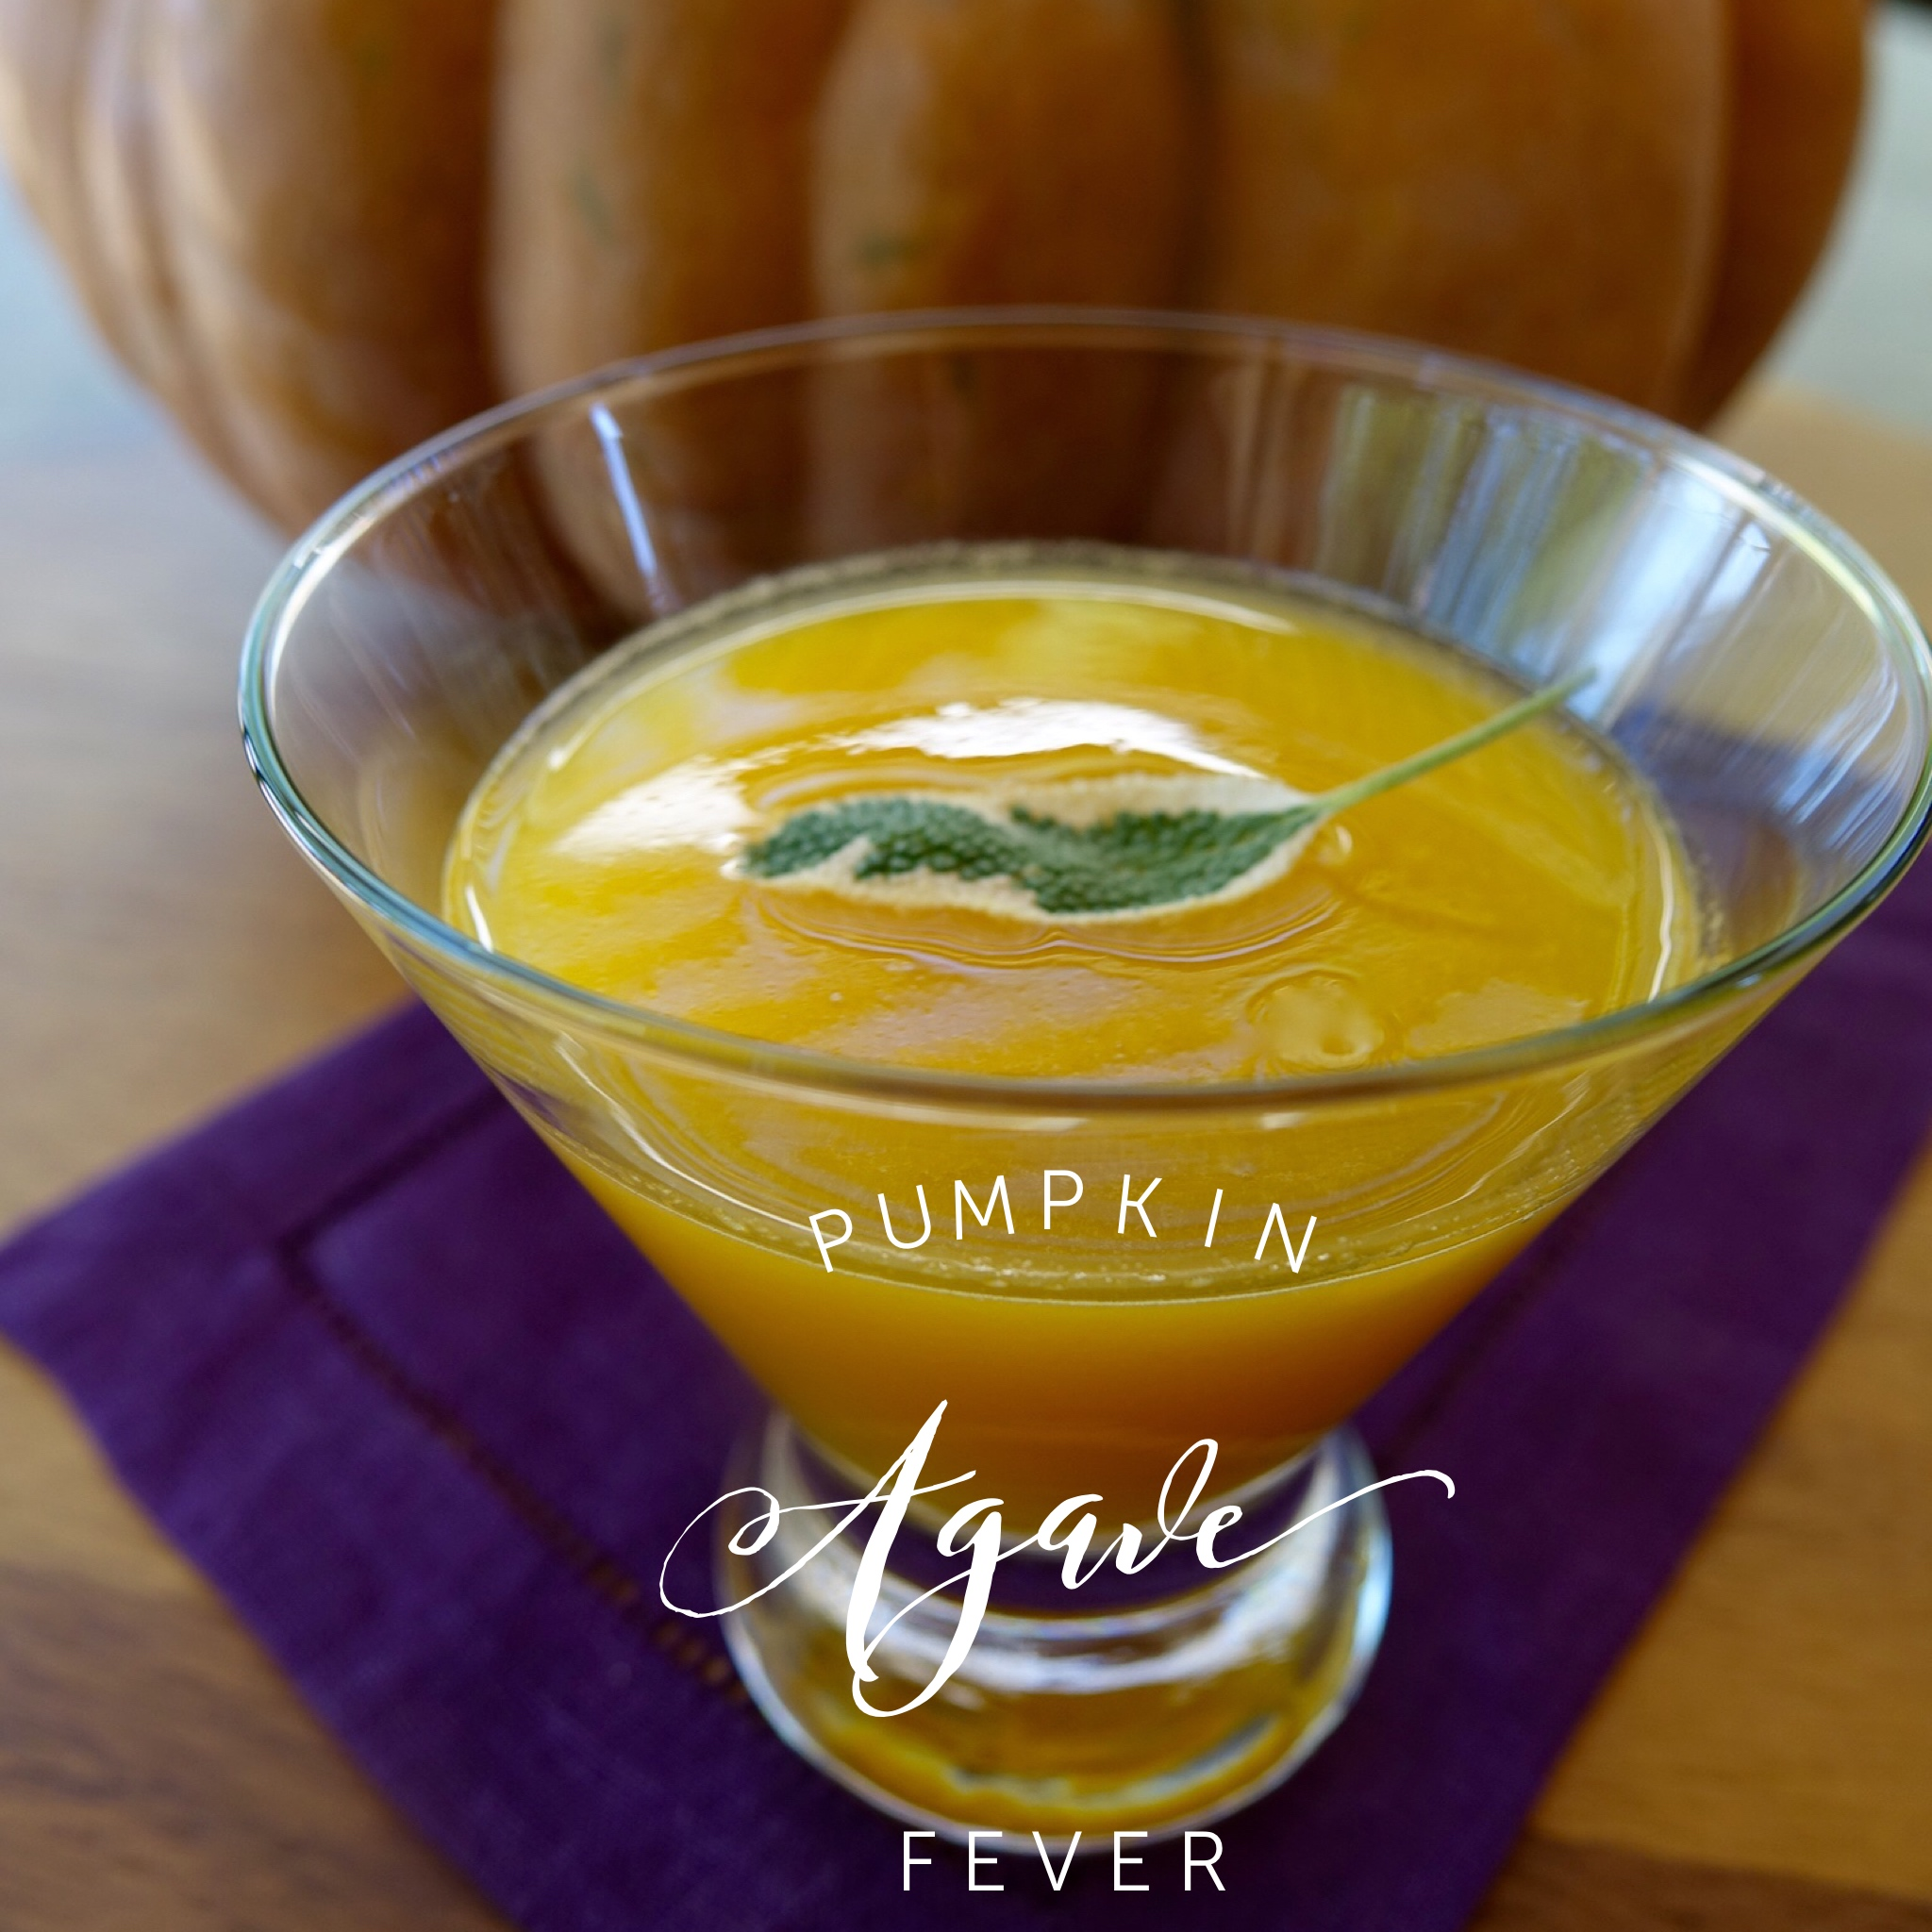 Pumpkin Agave Fever